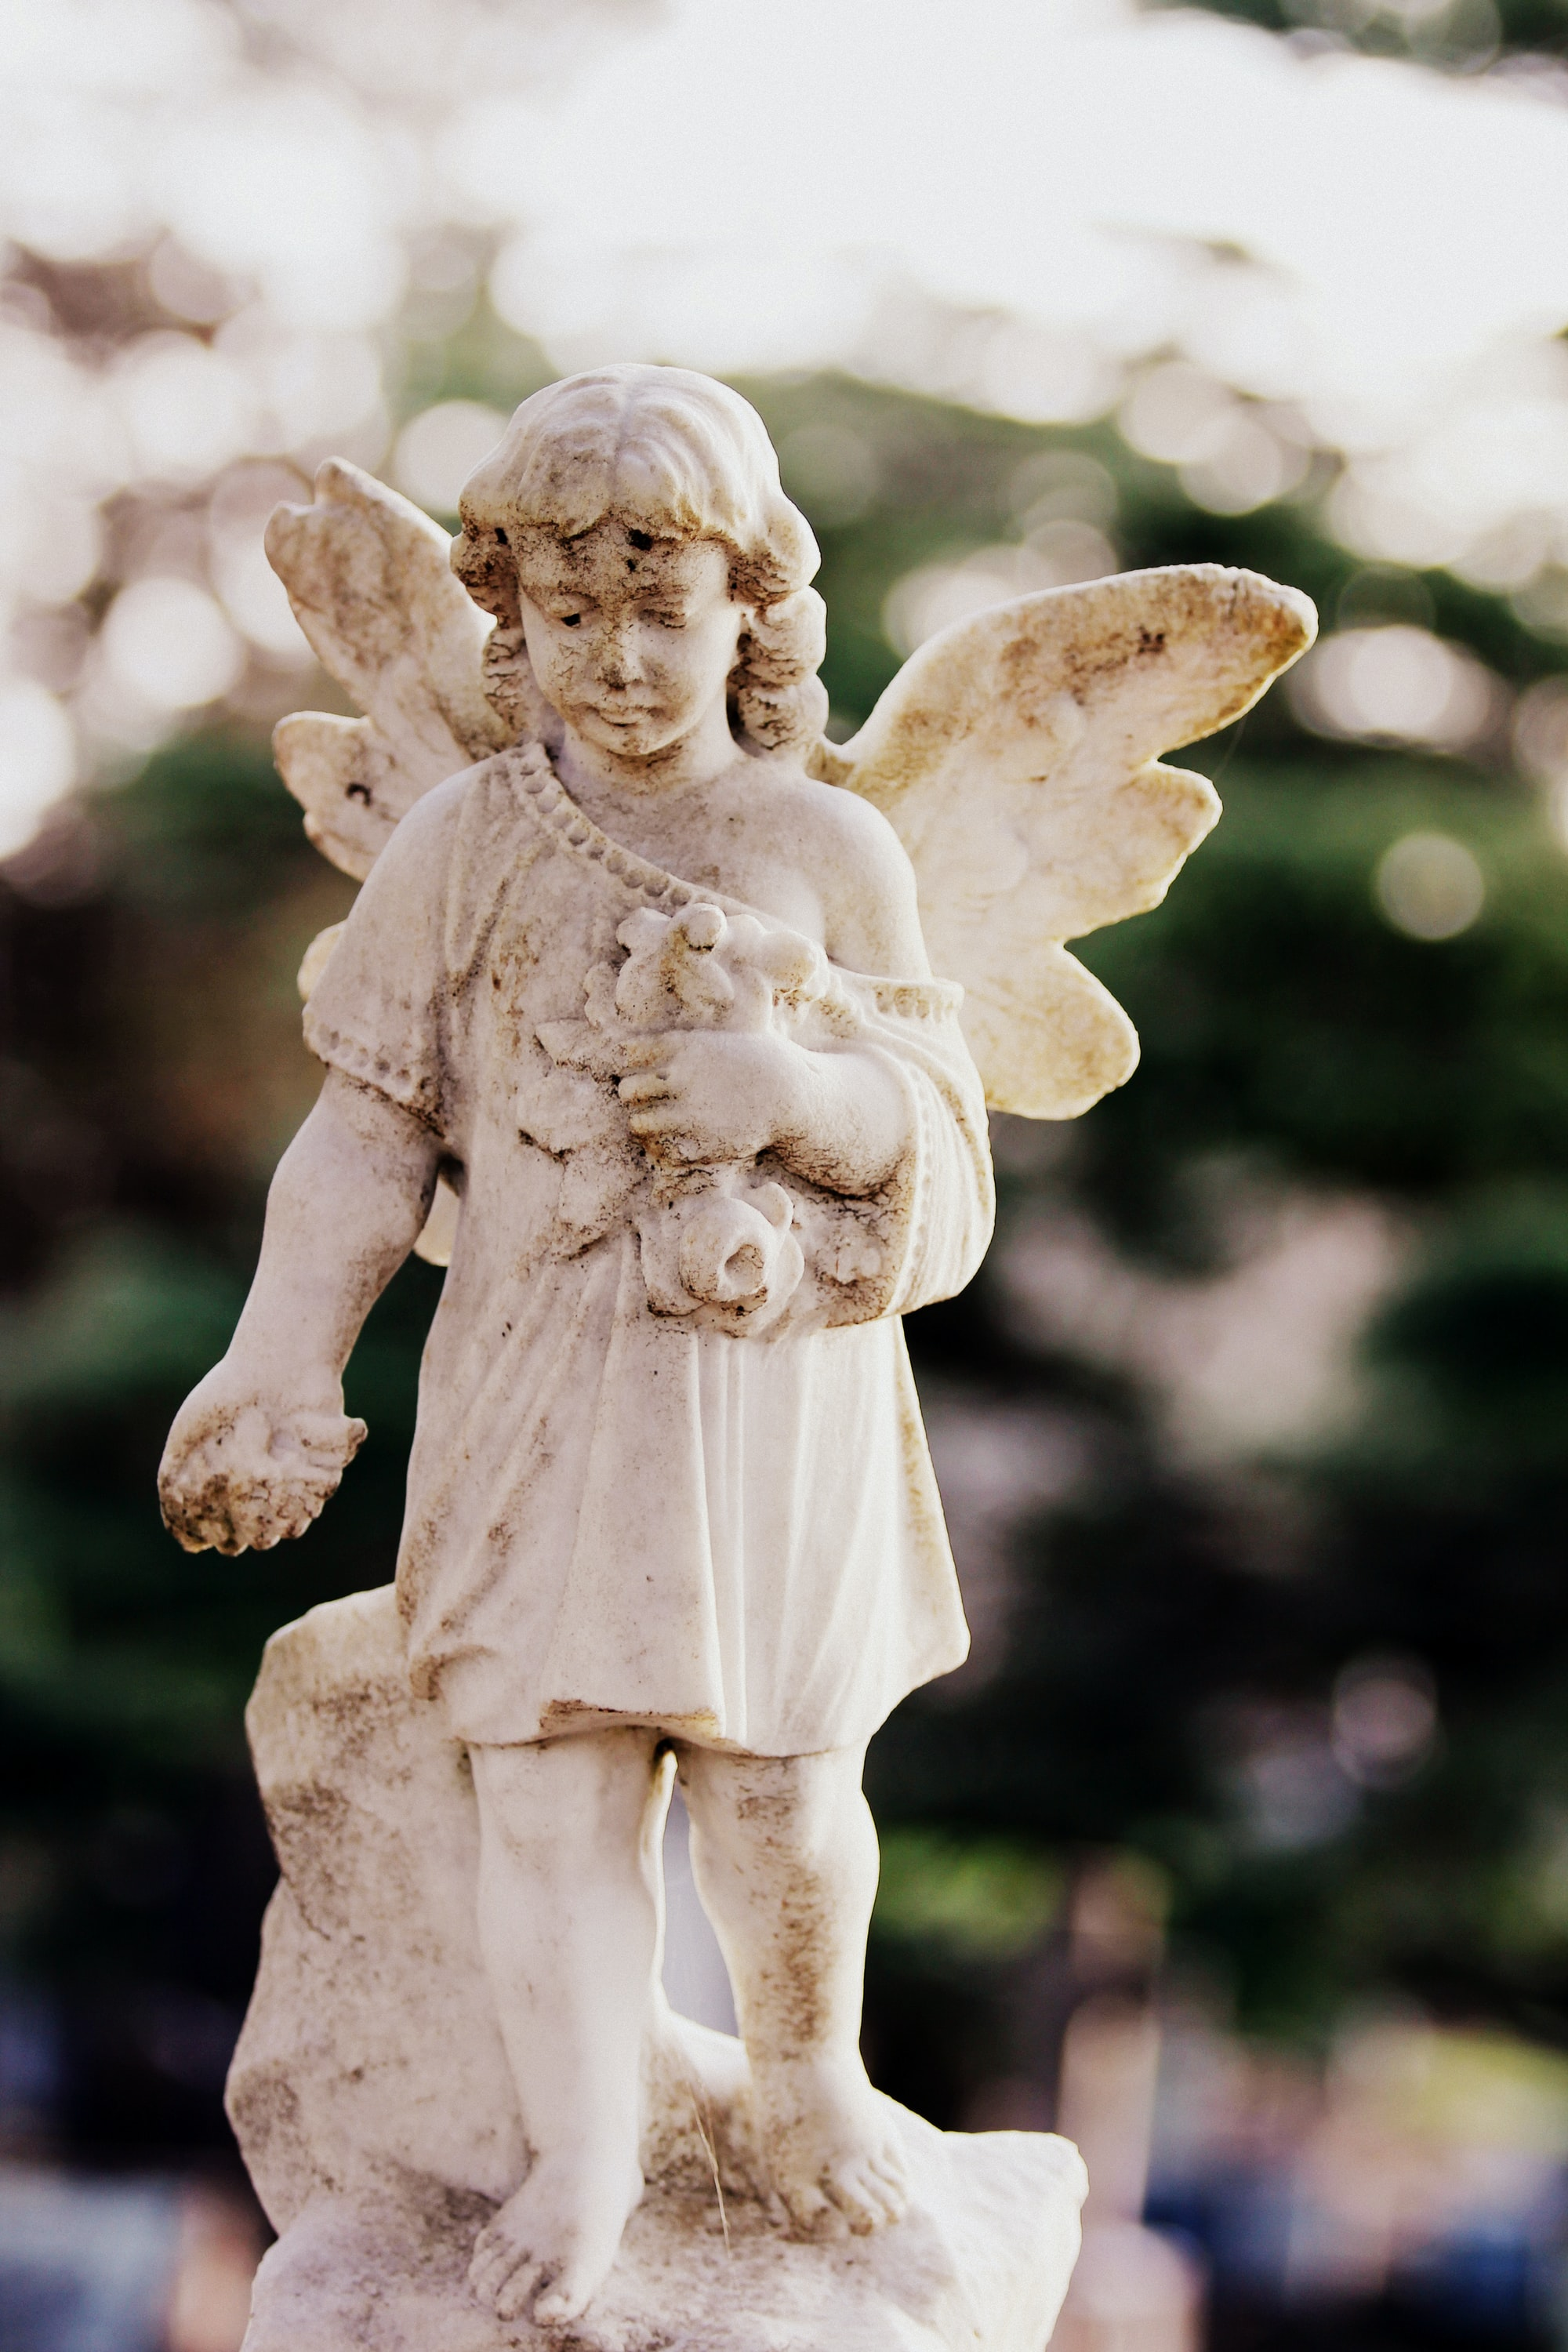 The beautiful park-like grounds of Purewa have thousands of graves, some well maintained, others long forgotten. This angel clasps a treasure next to her body.